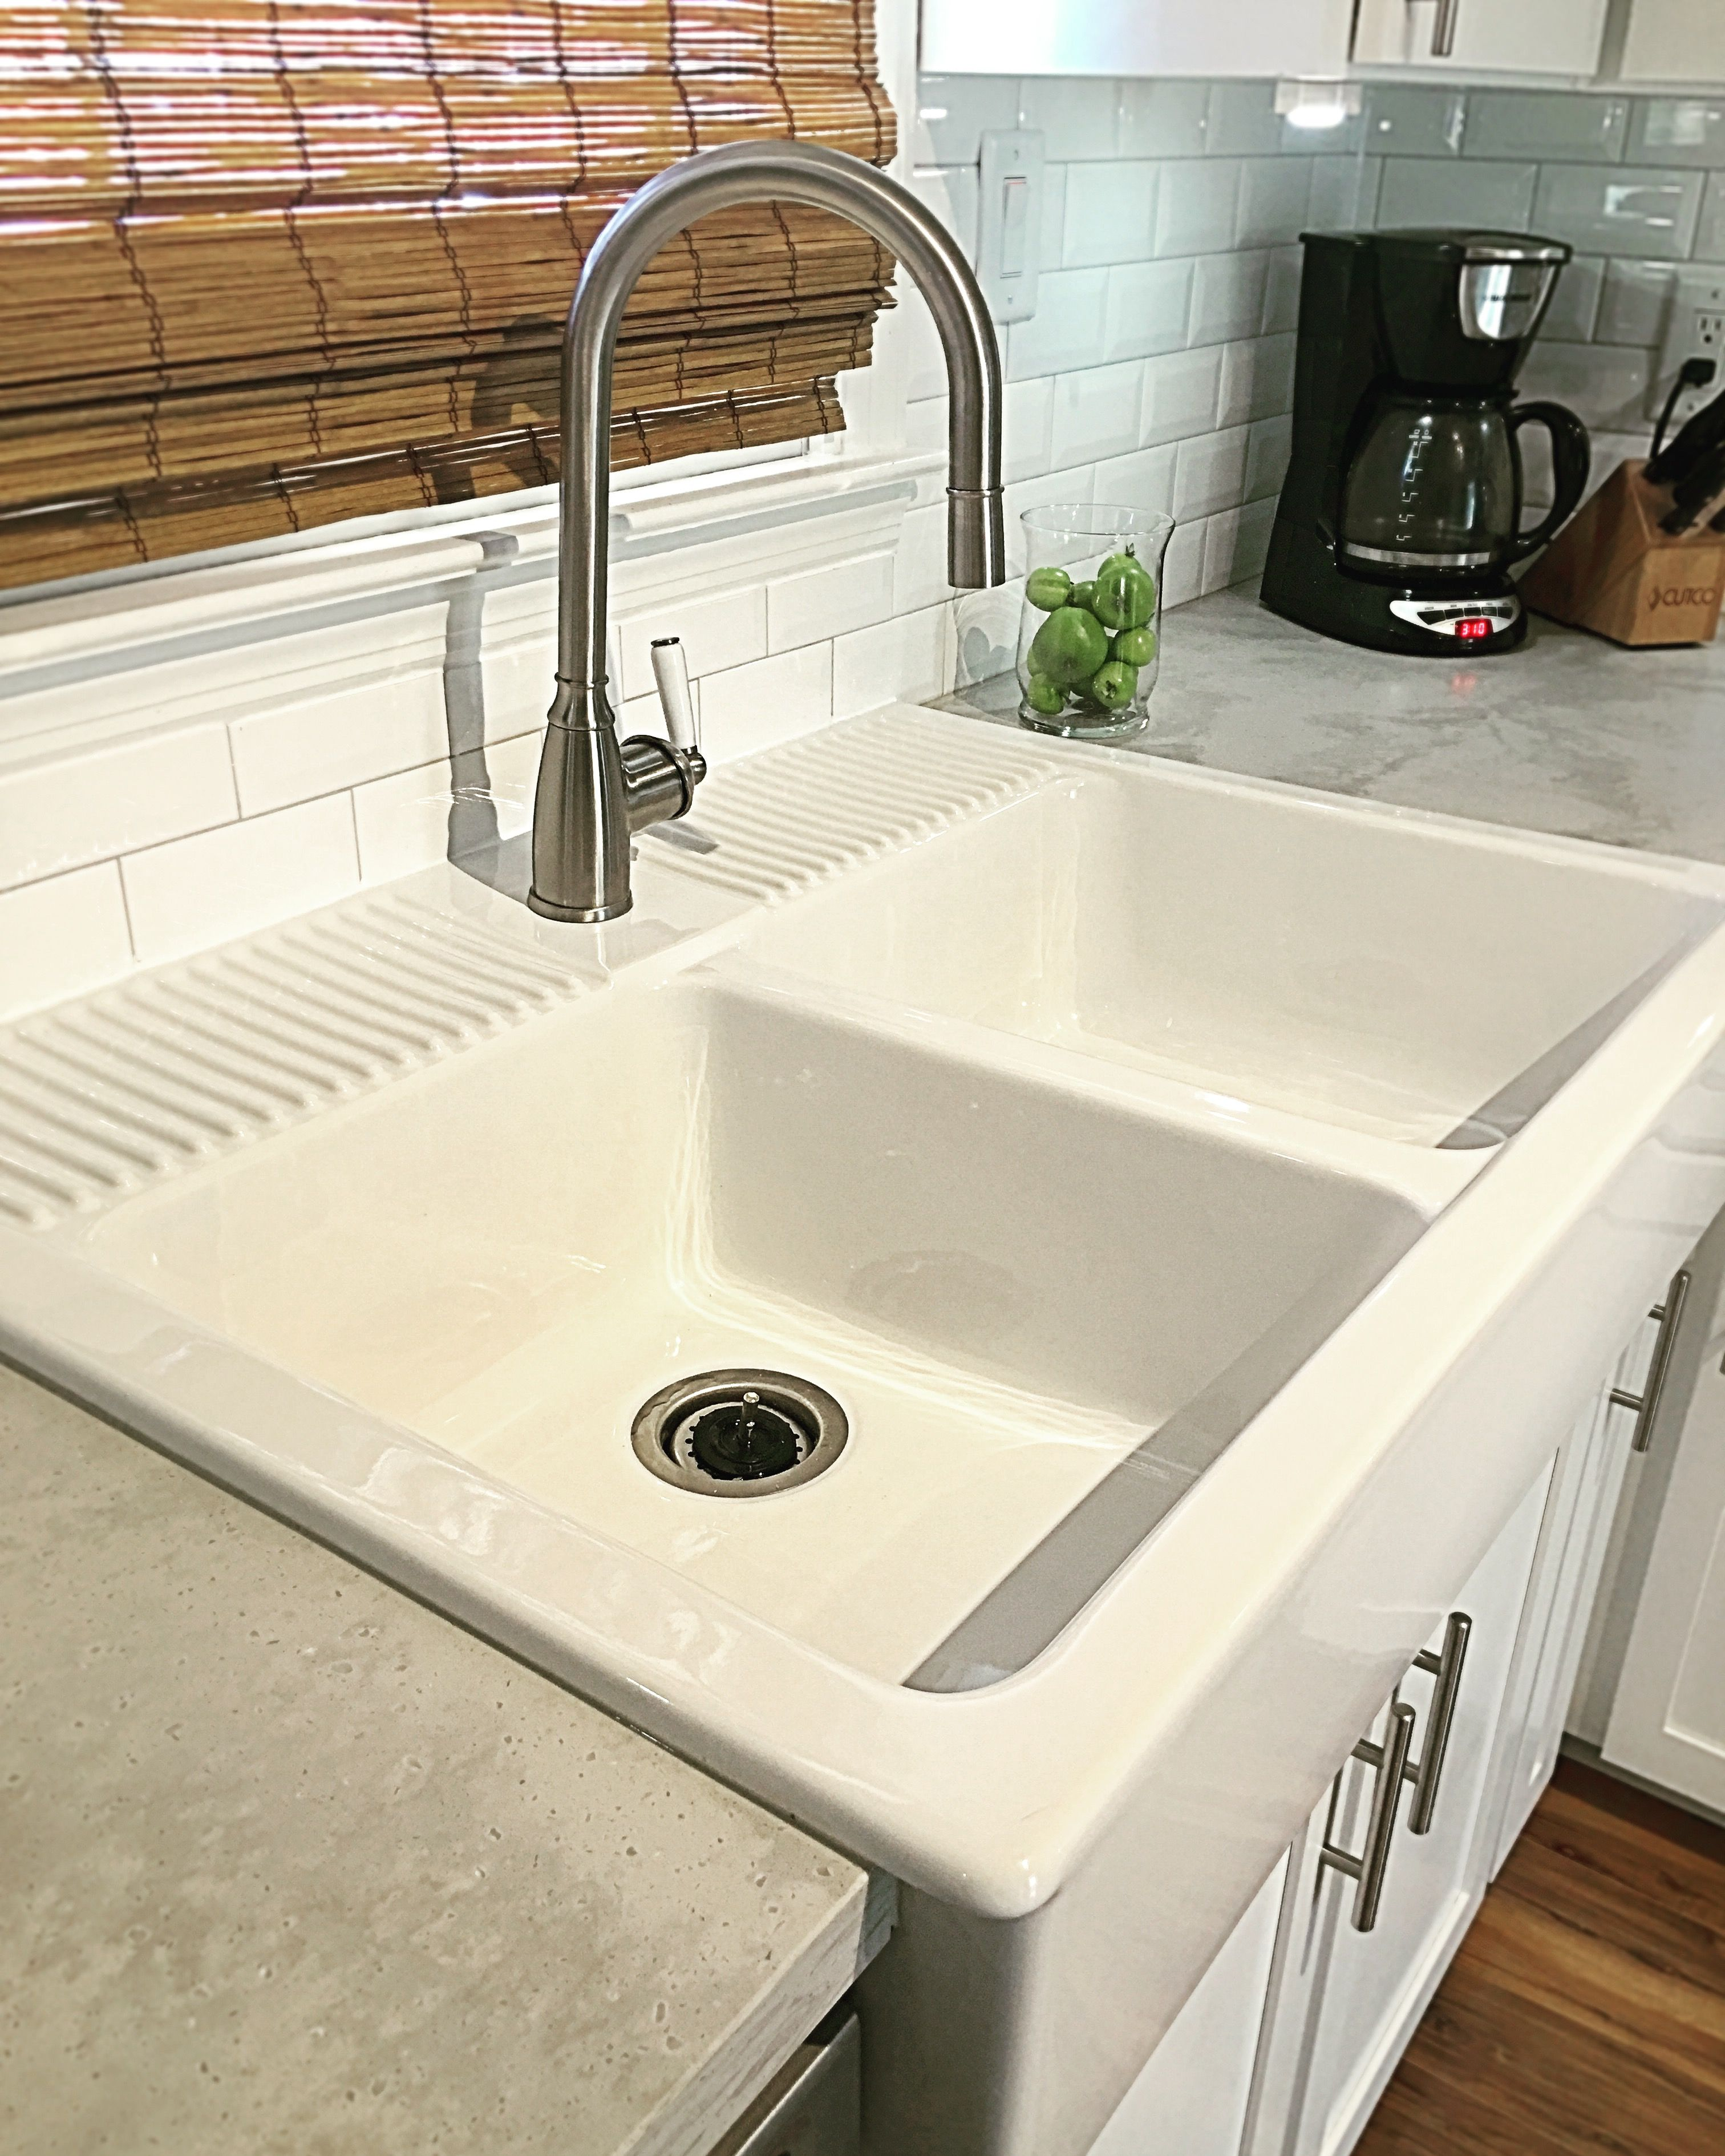 Ikea Farmsink And Faucet, Staron Solid Surface Countertops